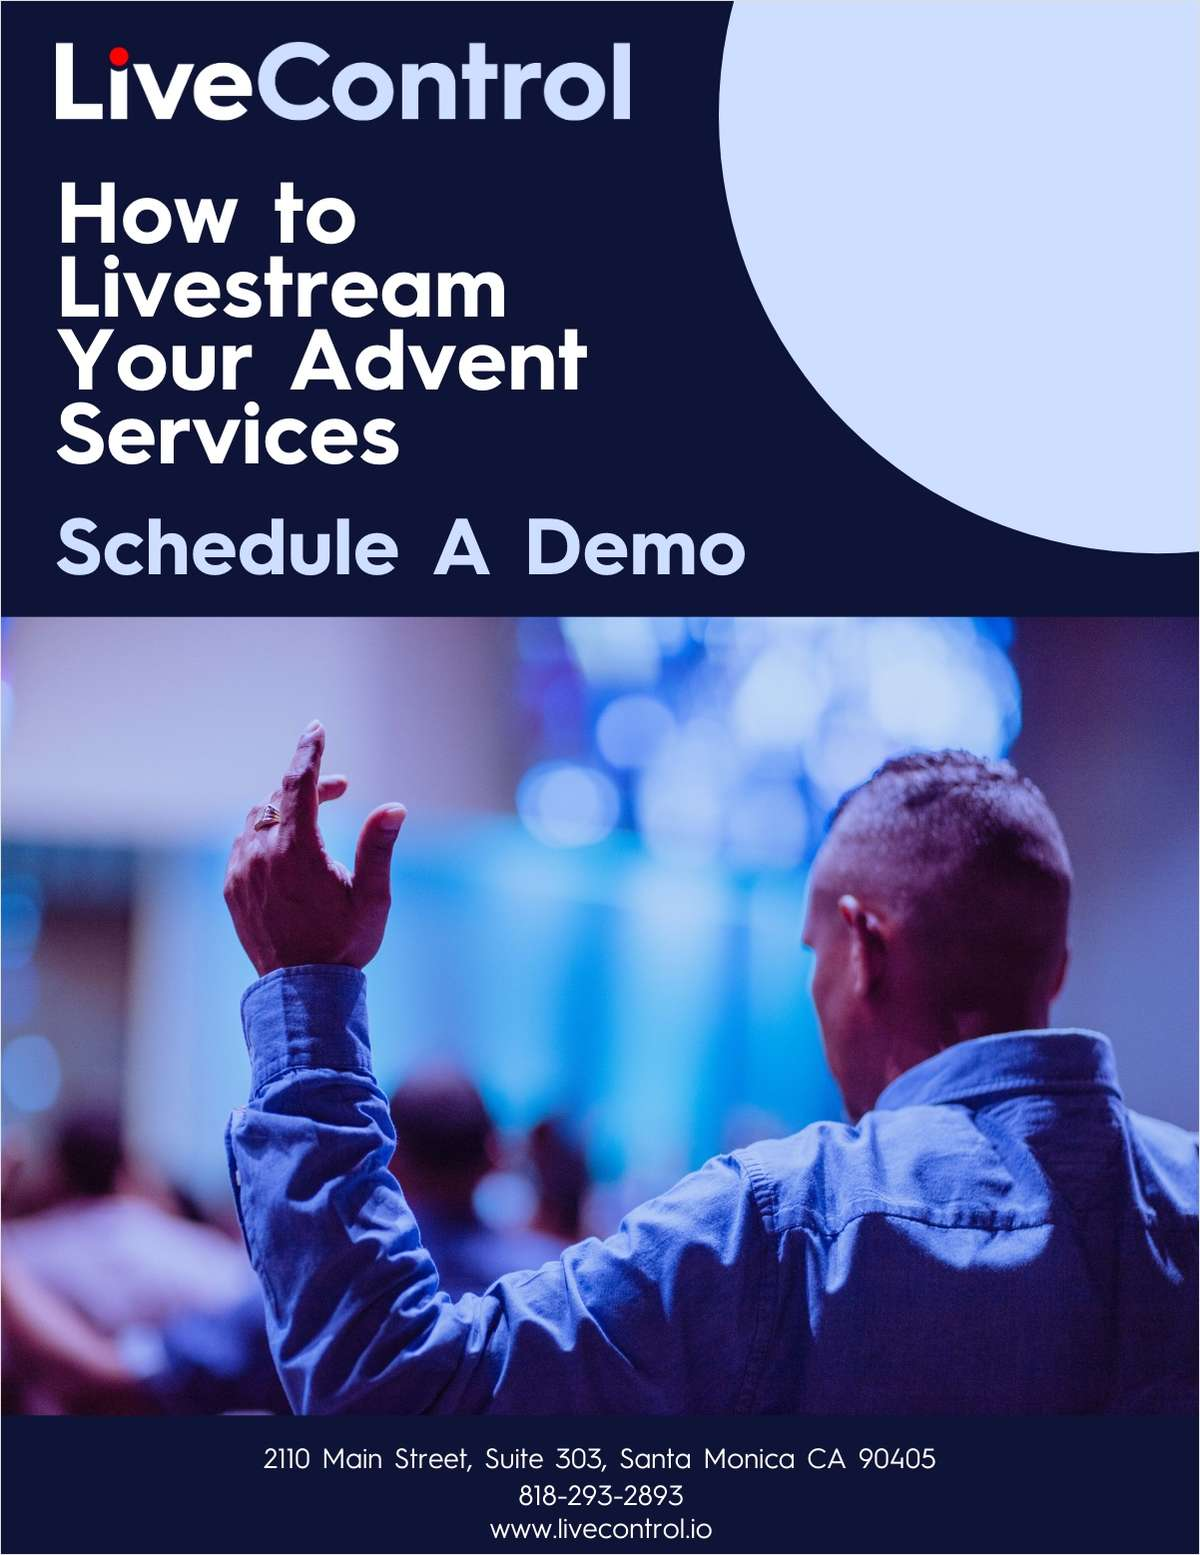 How To Livestream Your Advent Services: Schedule A Demo